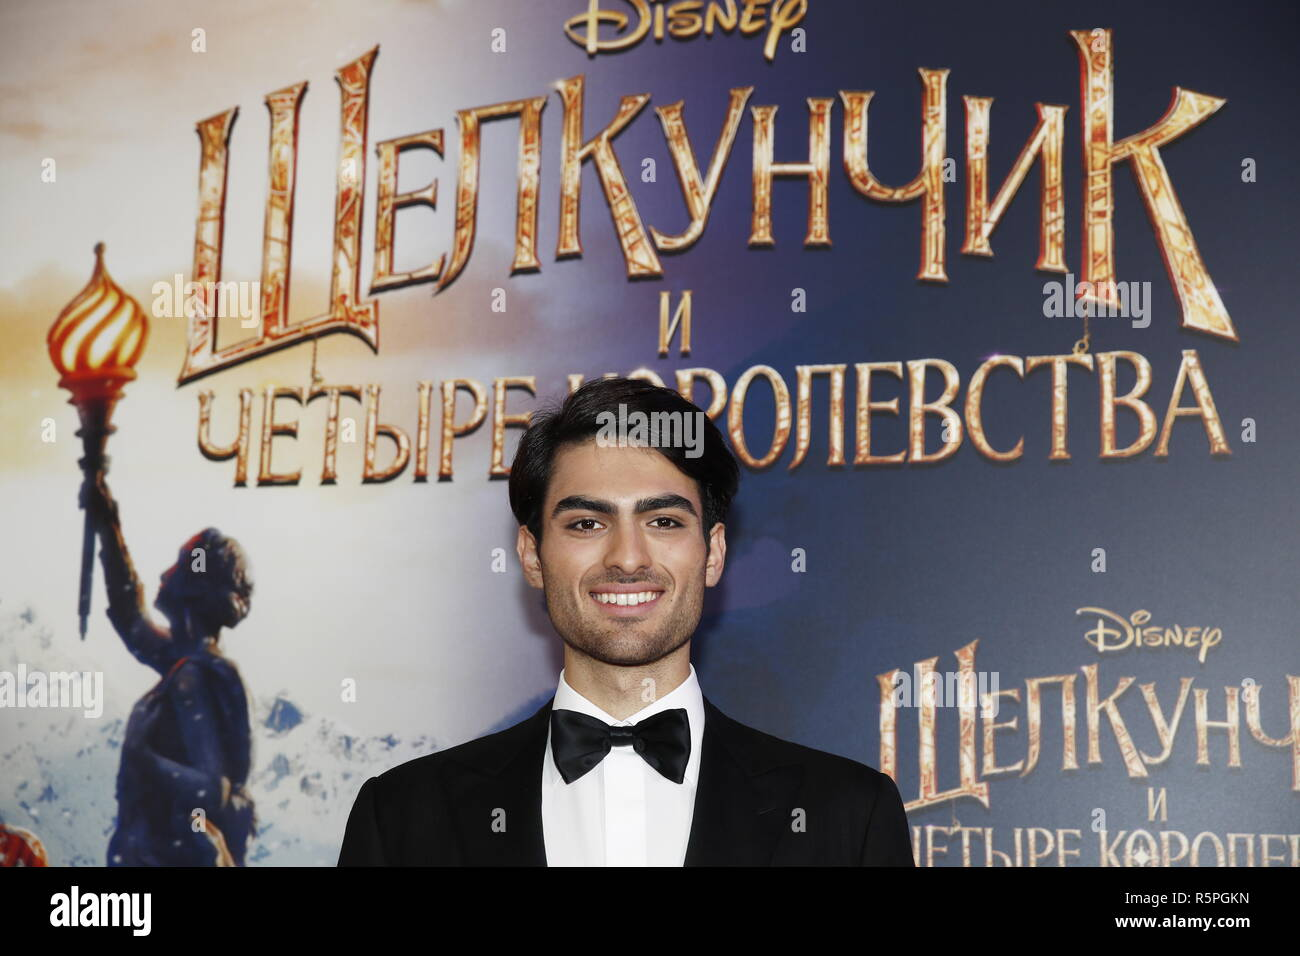 Moscow, Russian Federation. 02nd Dec, 2018. MOSCOW, RUSSIA - DECEMBER 2, 2018: Italian tenor Matteo Bocelli attends a pre-premiere screening of The Nutcracker and the Four Realms fantasy adventure film at the Zaryadye Concert Hall. Artyom Geodakyan/TASS Credit: ITAR-TASS News Agency/Alamy Live News - Stock Image